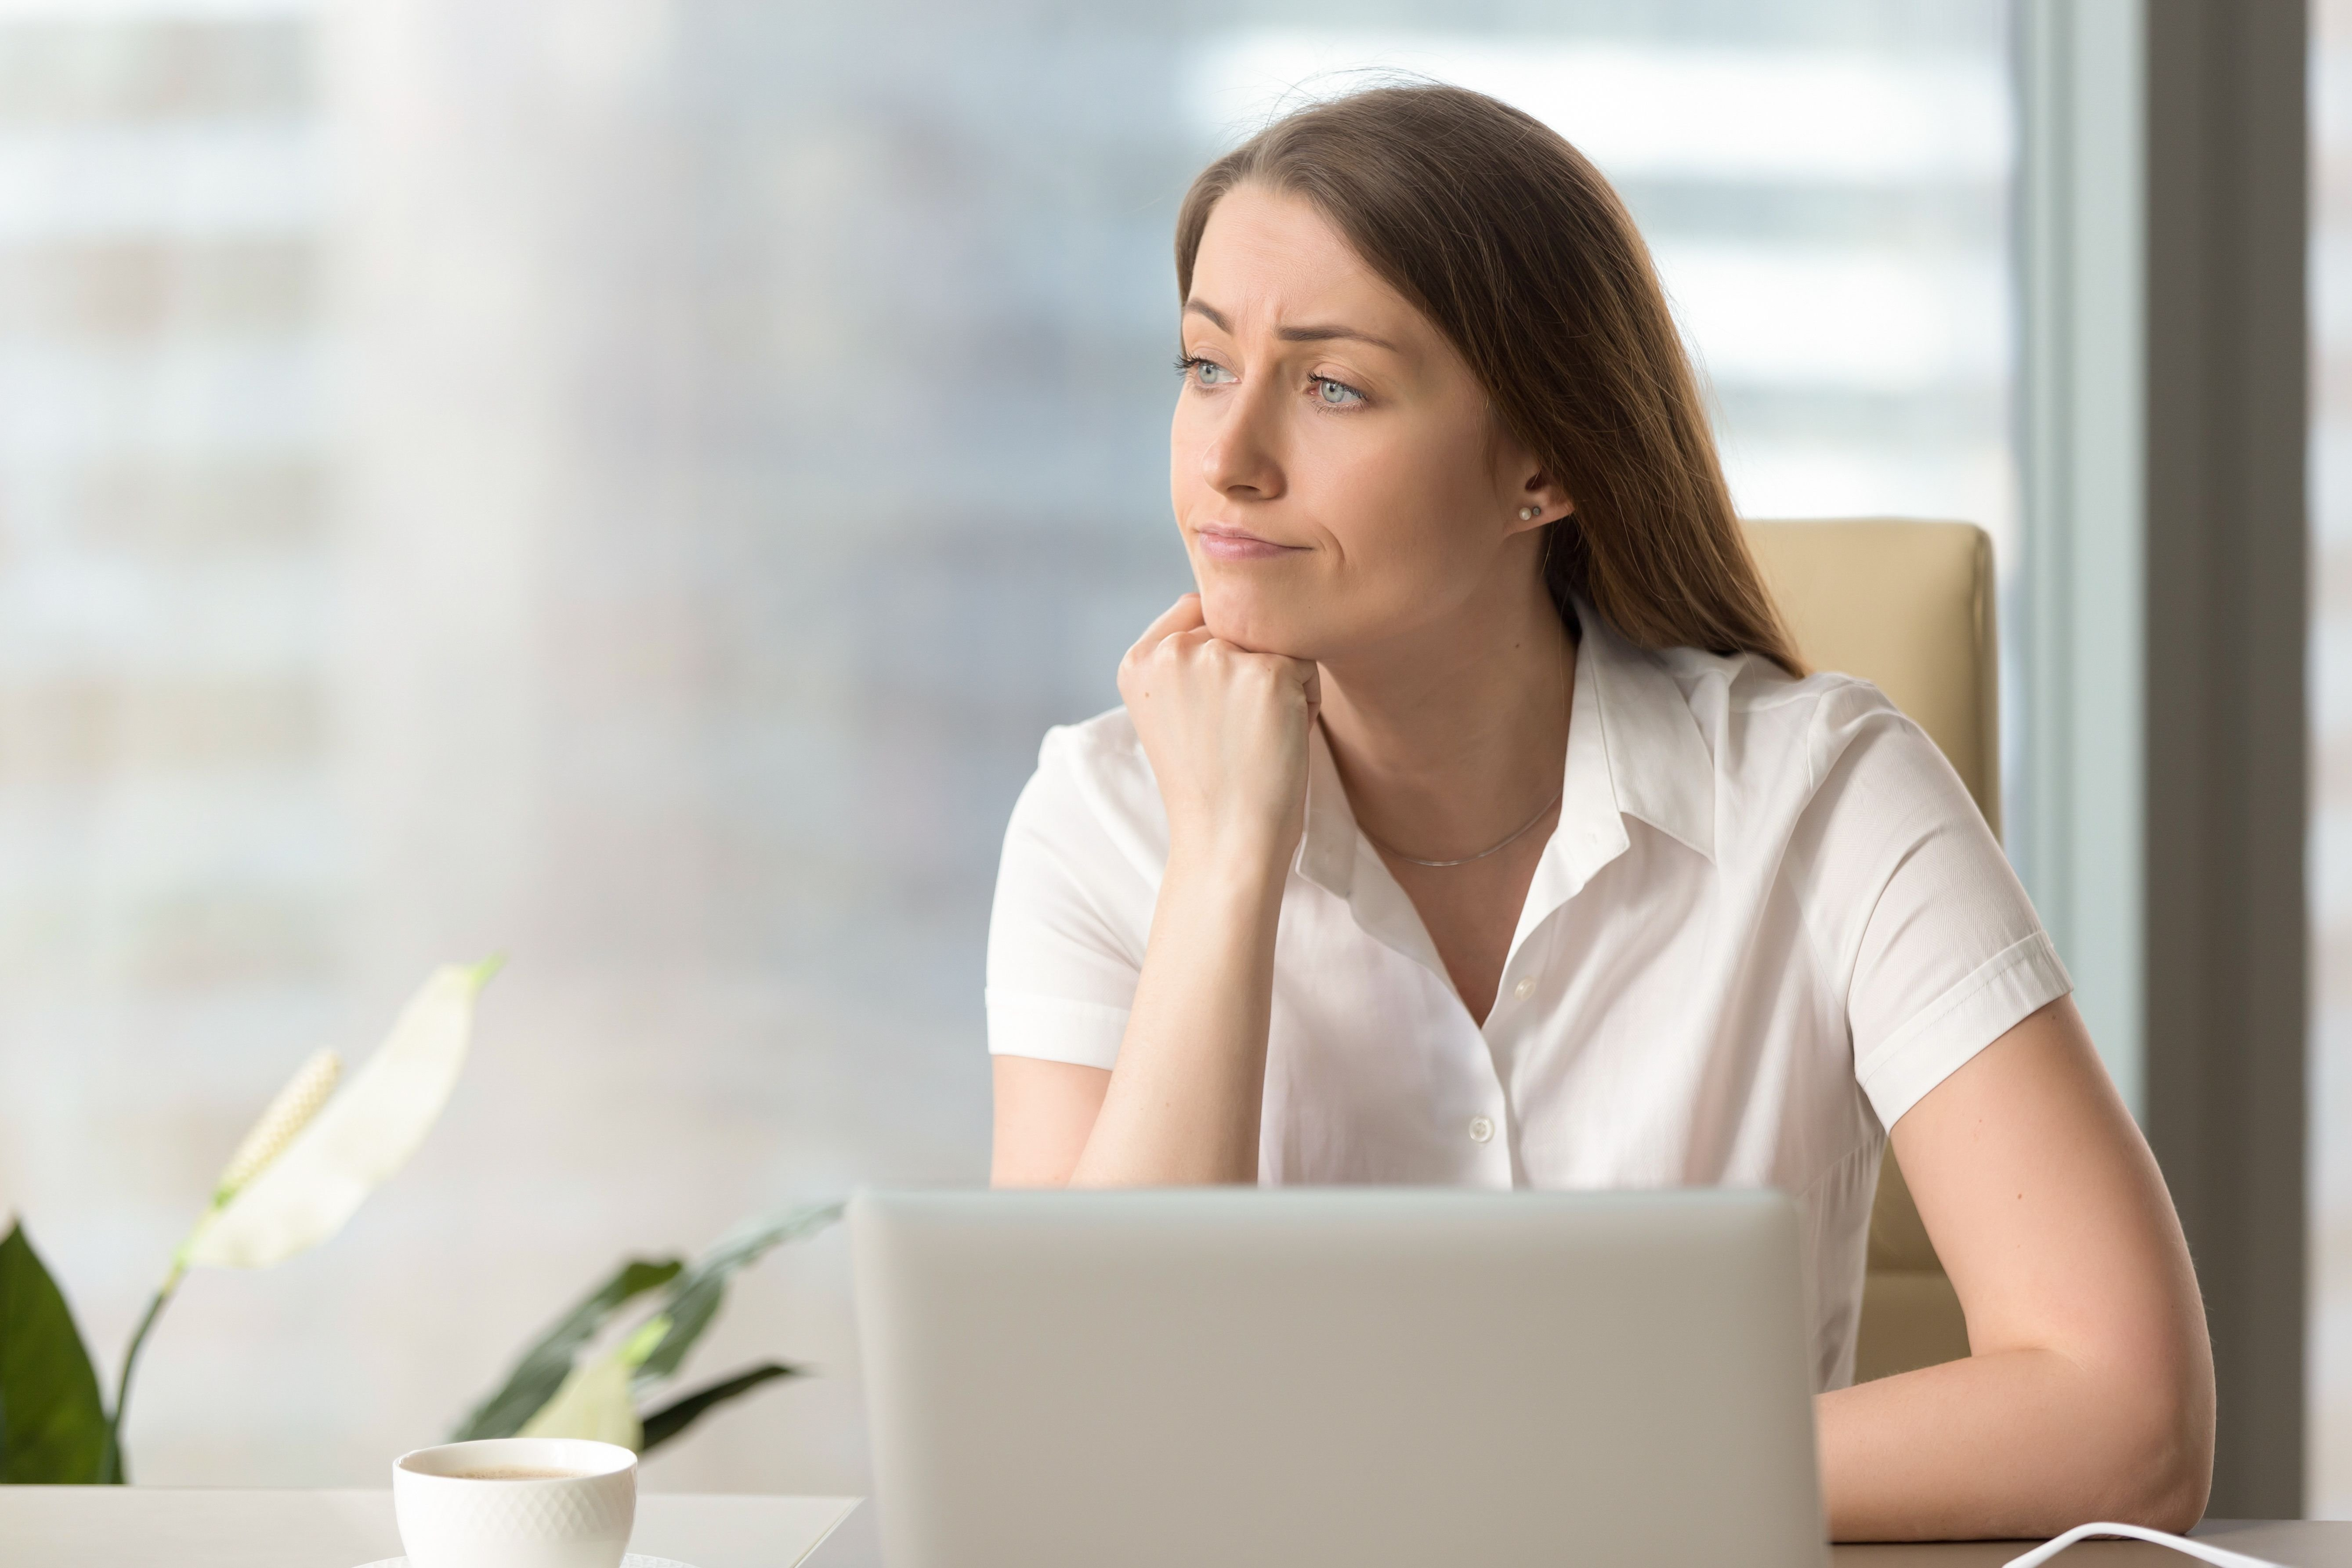 A woman looks problematic while looking out a window.   Source: Shutterstock